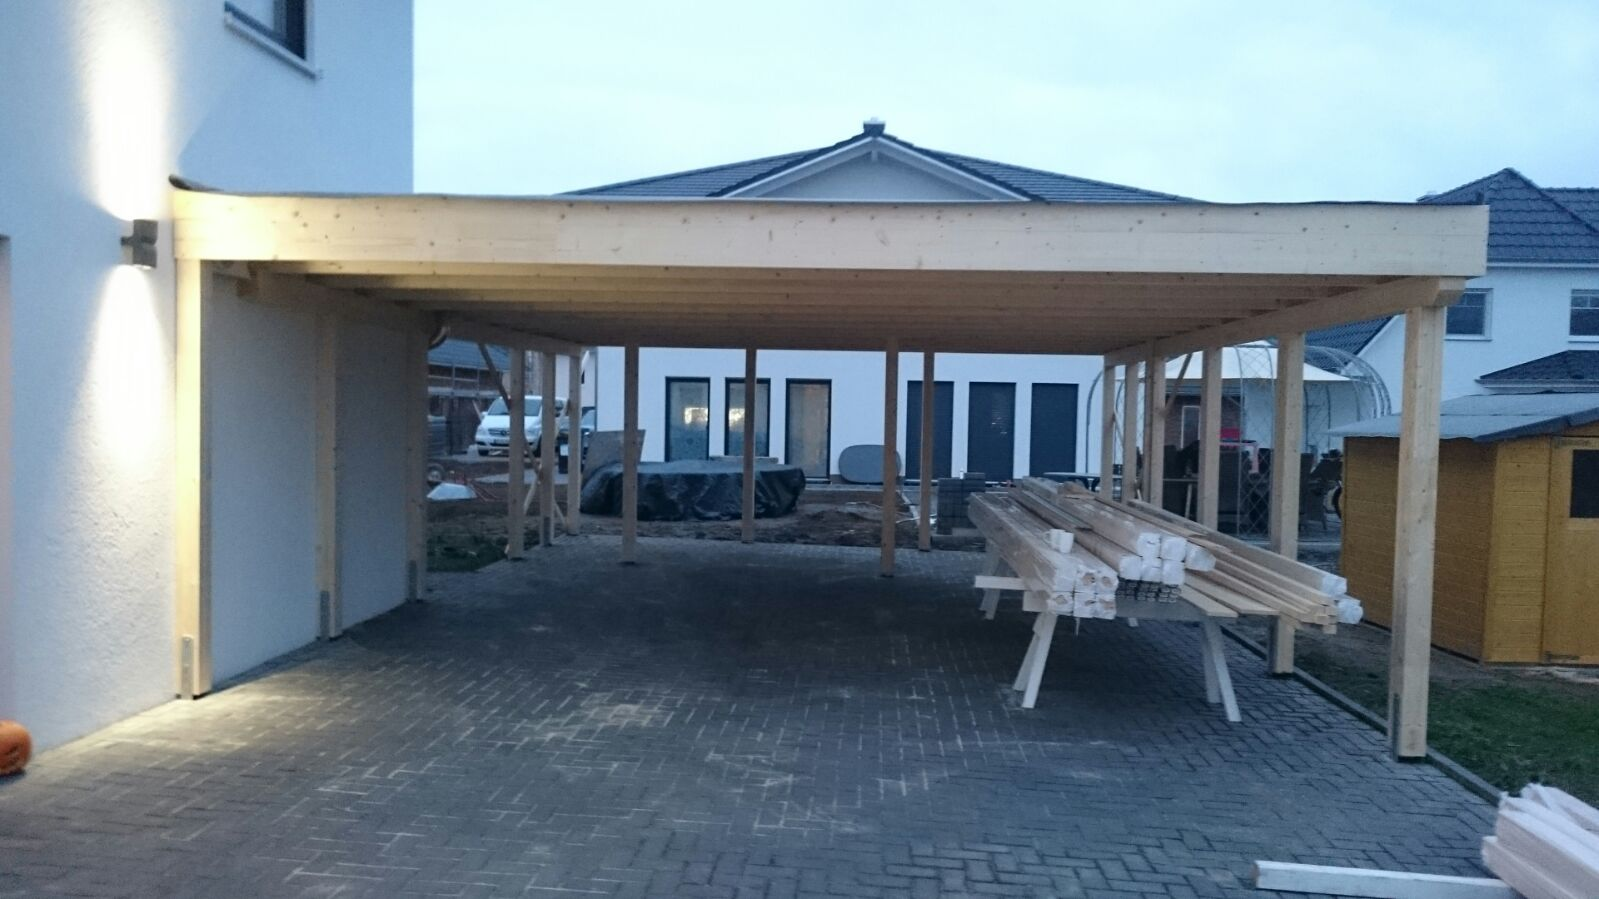 stadtvilla in elmenhorst carport mit schuppen. Black Bedroom Furniture Sets. Home Design Ideas